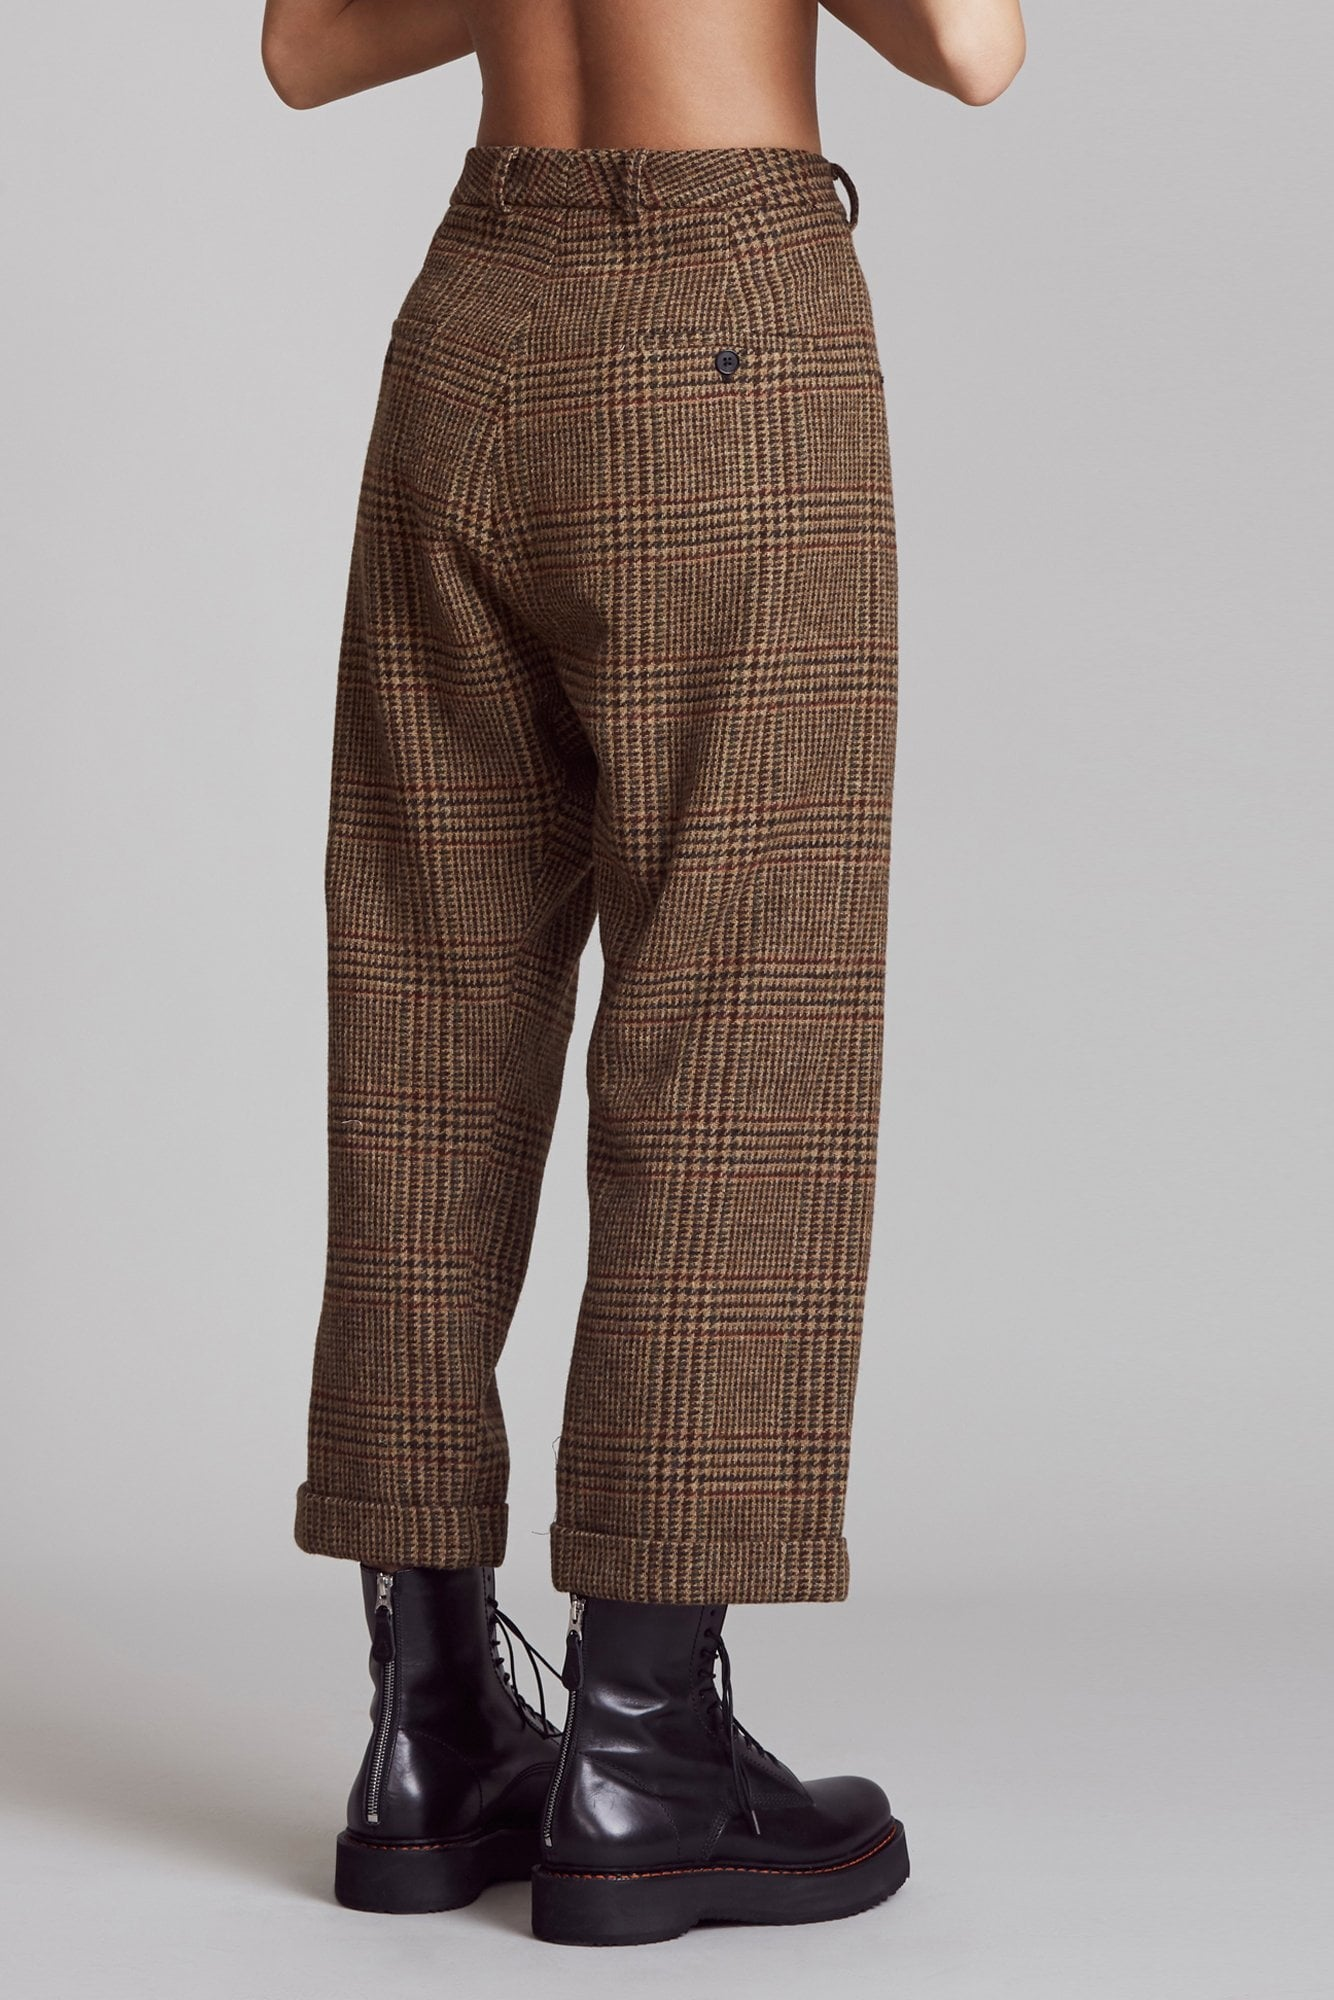 Crossover Trouser - Brown Multi Glenplaid